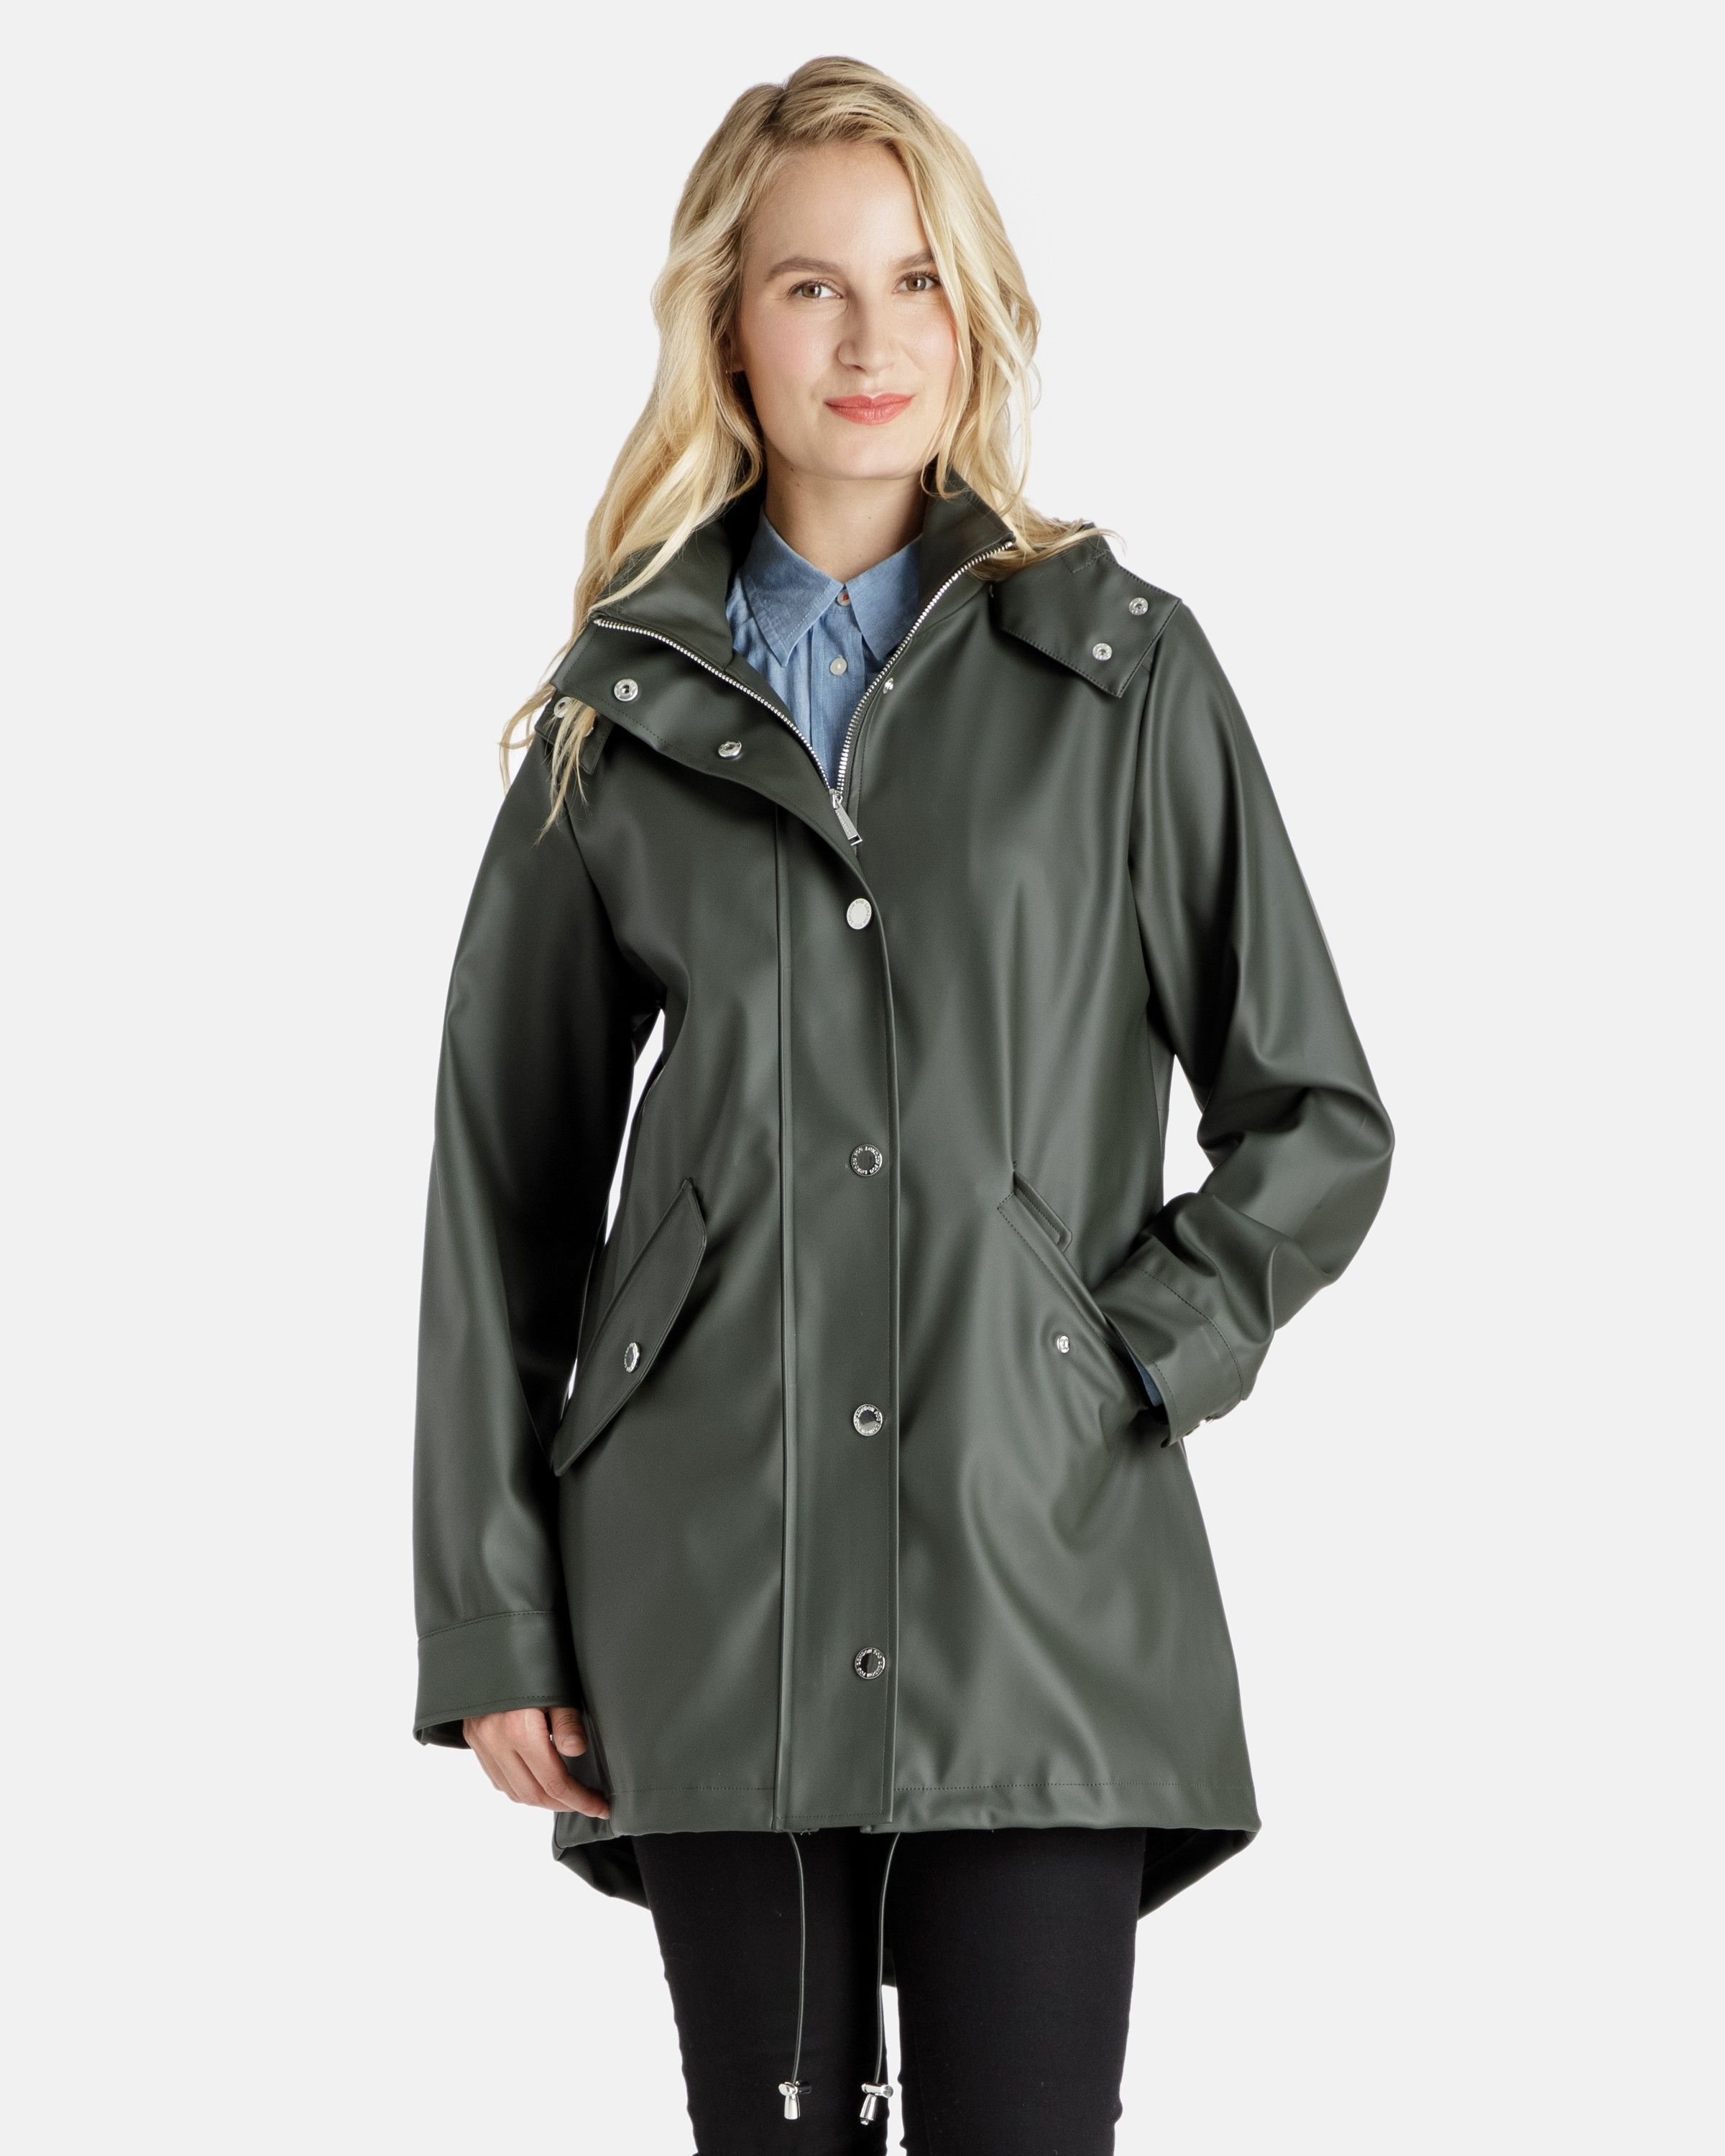 2576d036dfb Michaela Rubberized Rain coat with Removable Hood - Women s Raincoats -  Coats for Women - Women